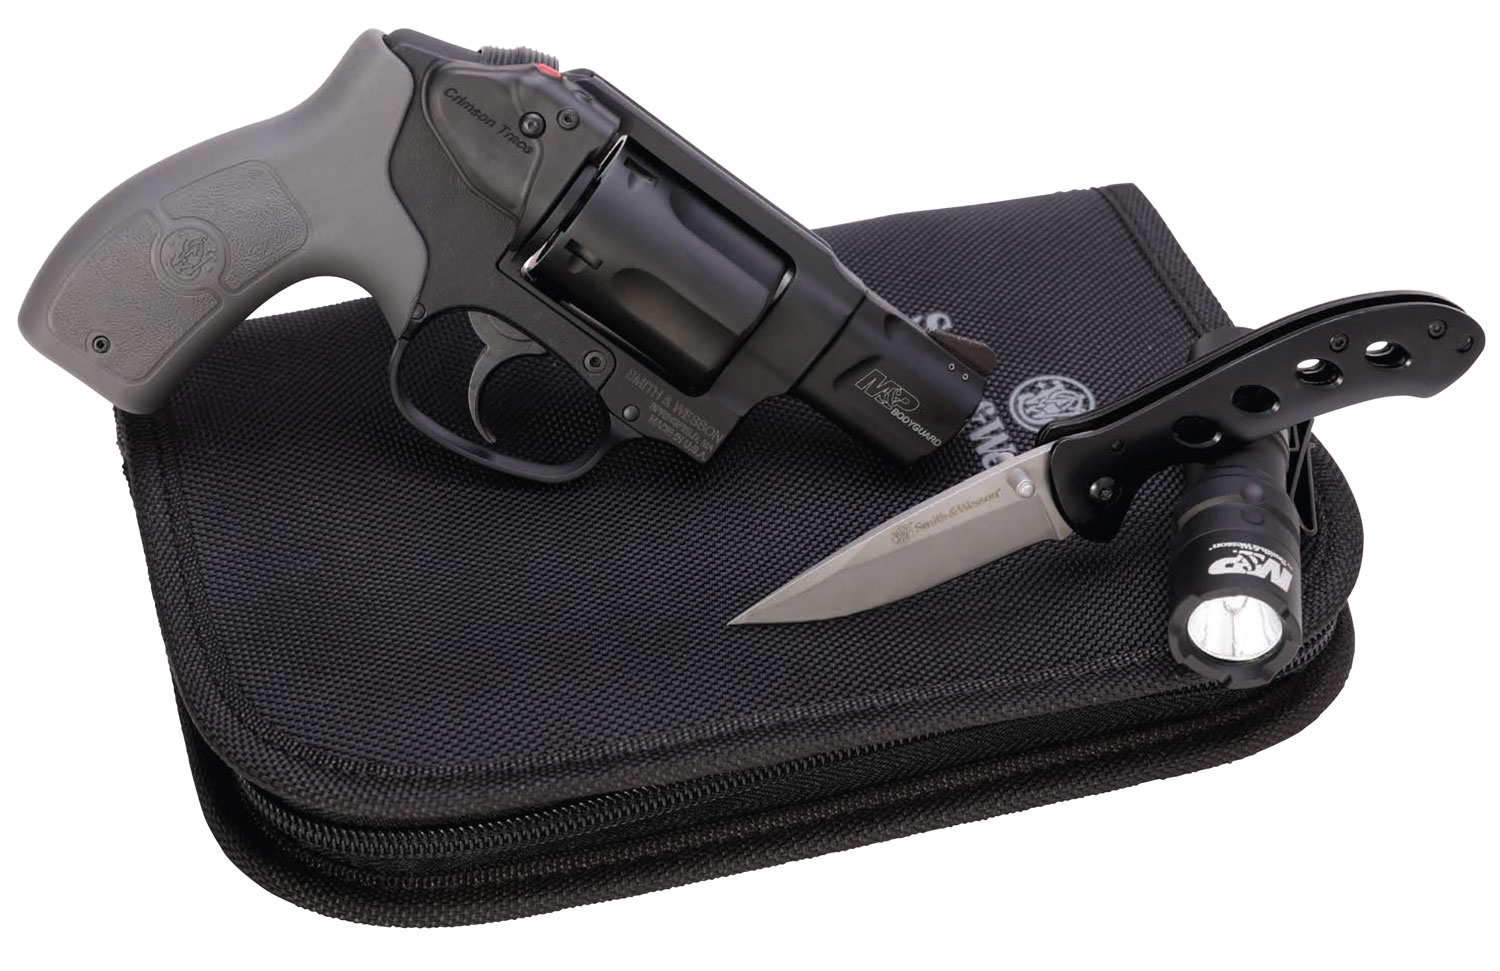 Smith & Wesson 12933 M&P Bodyguard 38 Everyday Carry Kit 38 Special +P 1.9